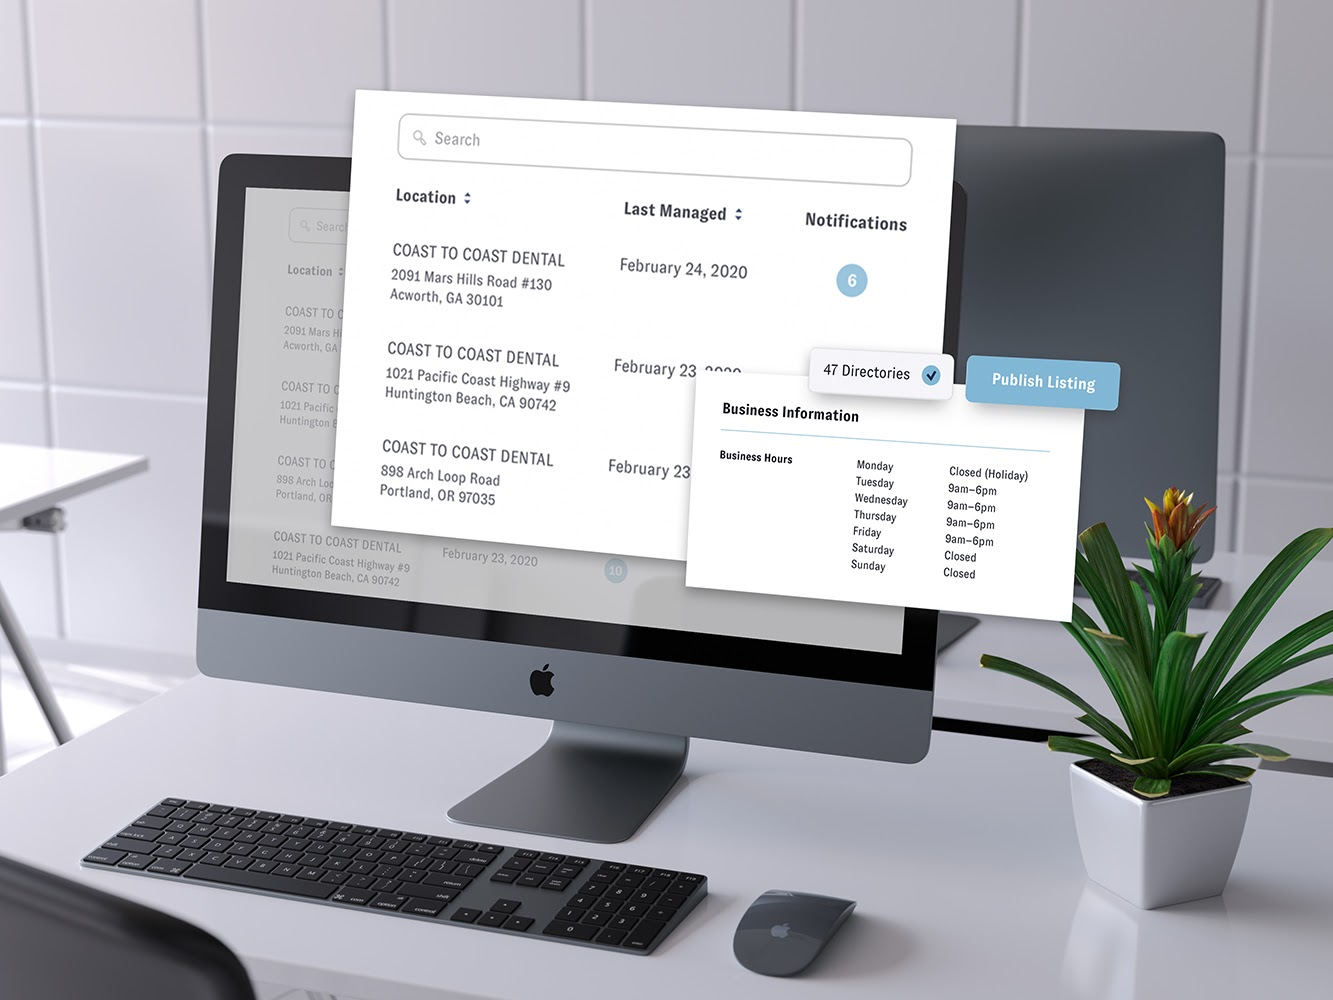 A Mac desktop has Nuvi Locate on it. The main page that lists locations and when they were last manage pops out of the screen and hovers above it and to the upper right. Another screen pops out with it. This one is smaller and lists business hours. At the top of this box is two buttons: 47 directories with a check mark next to it and a publish listing button in light blue.